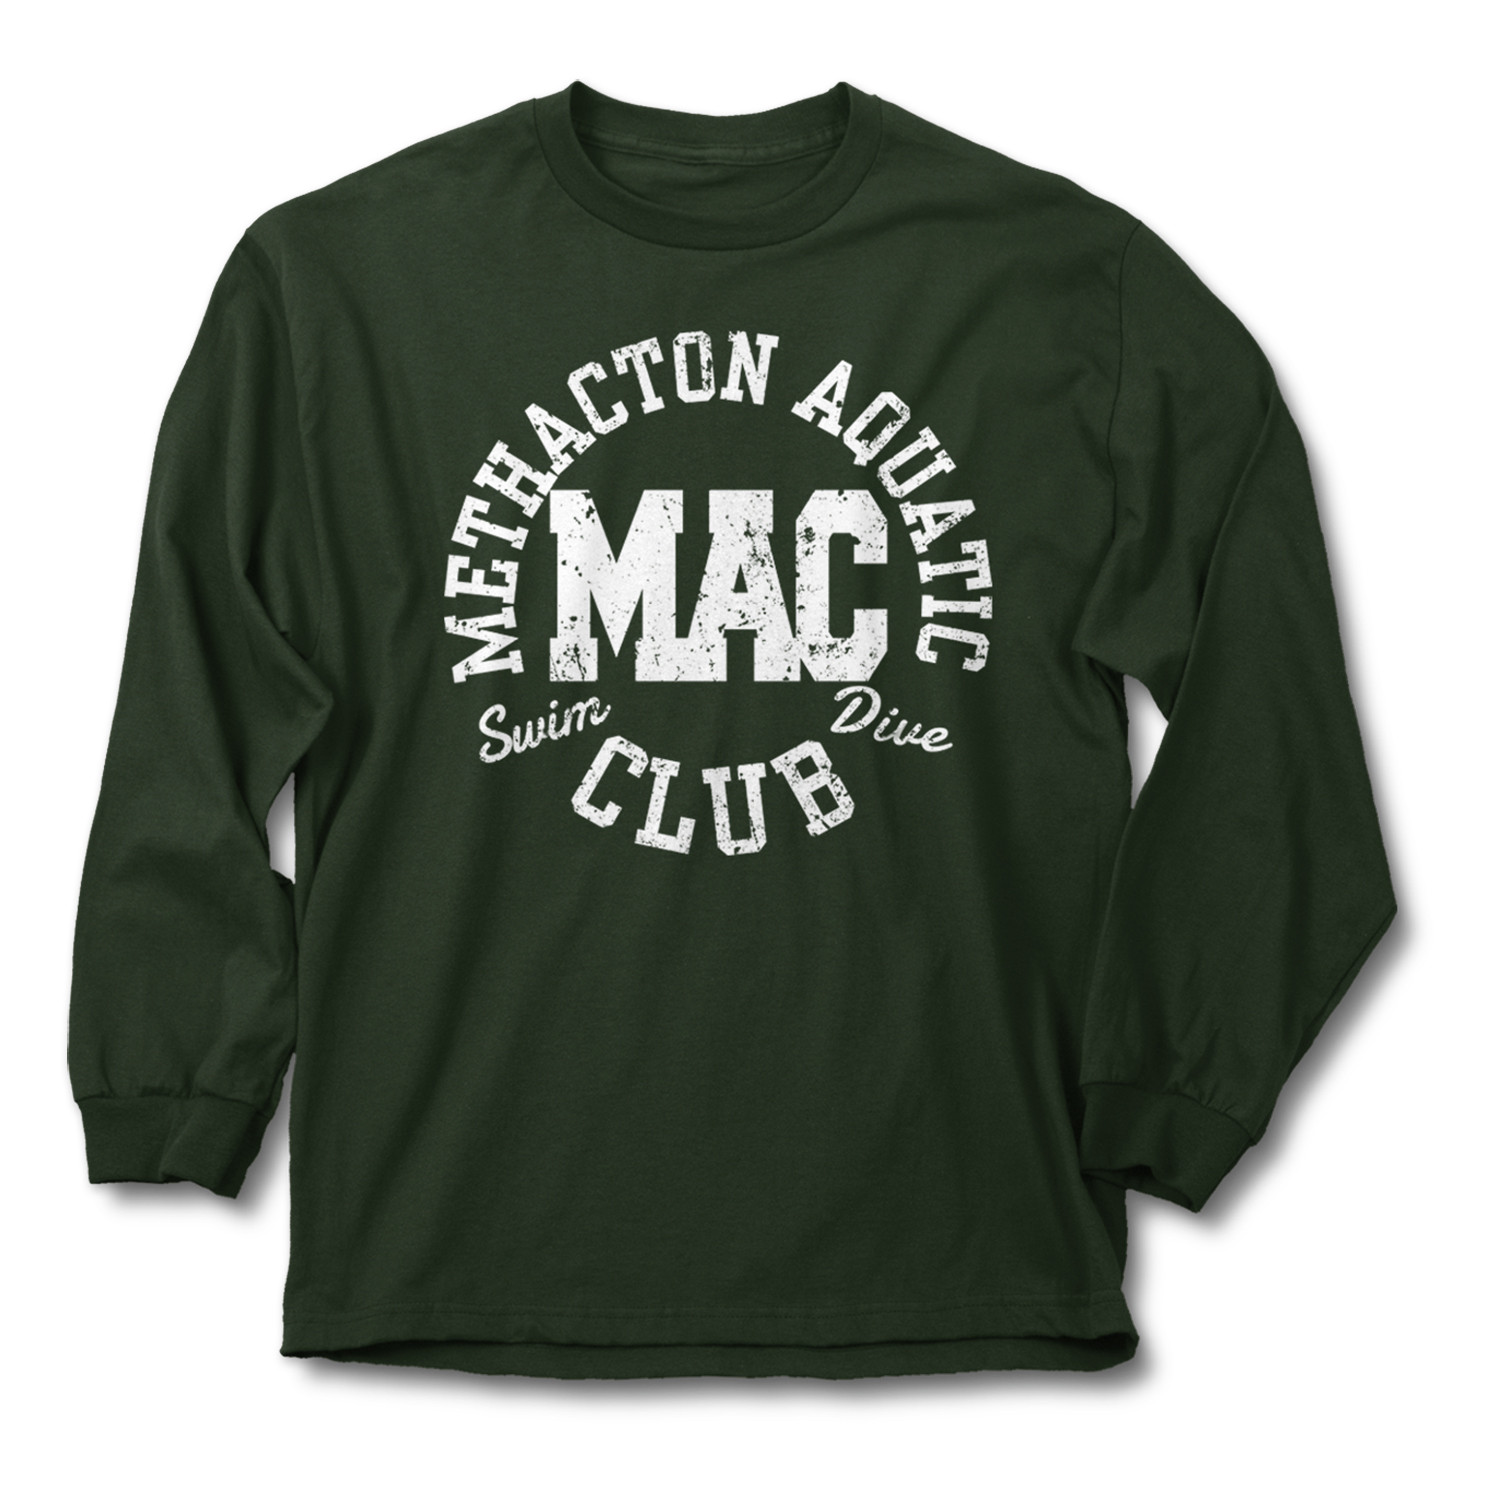 Mac Youth Long Sleeve Tee Double Click On Above Image To View Full Picture